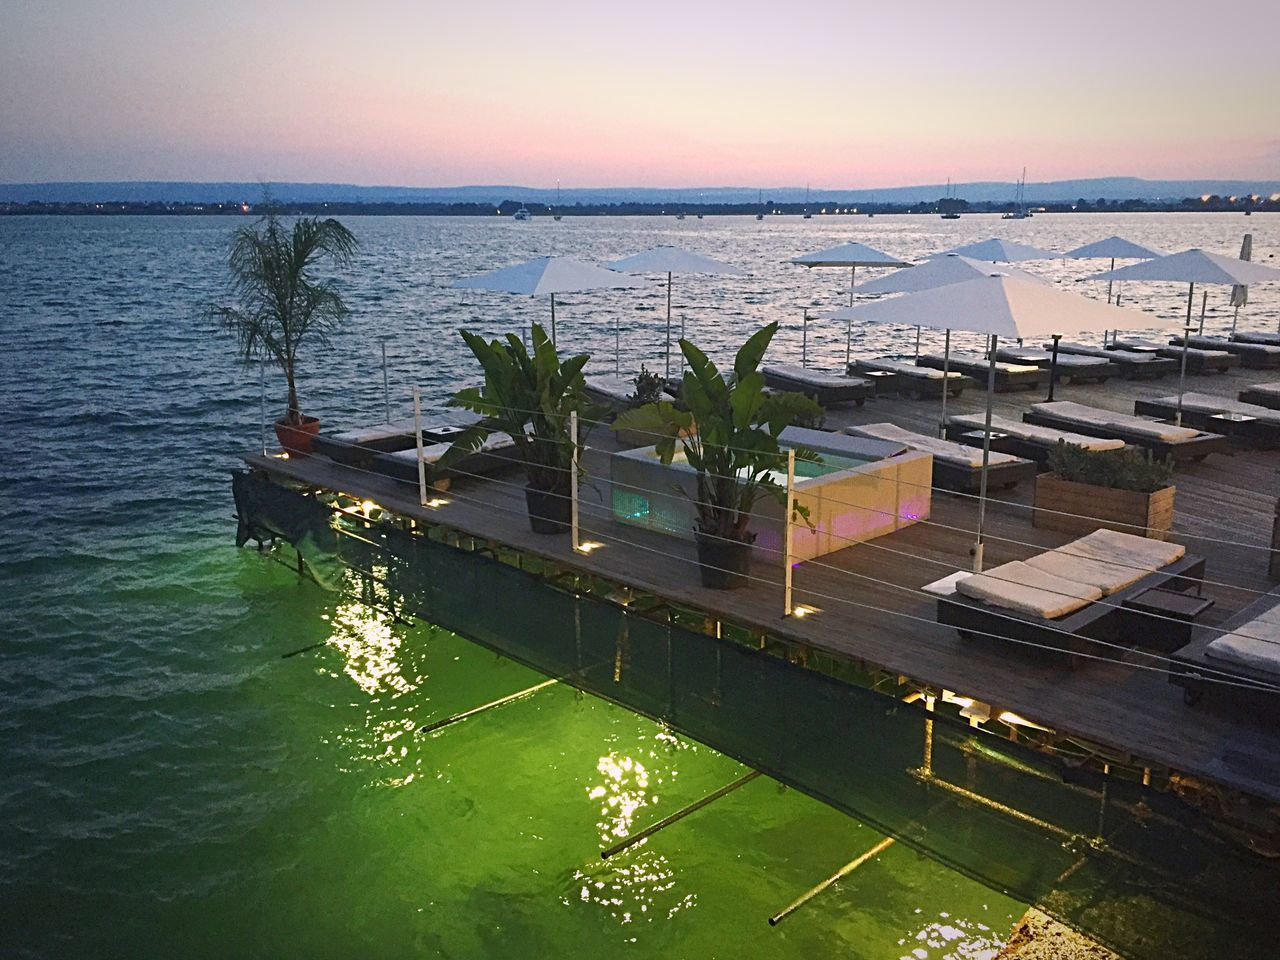 High Angle View Water Sea Beauty In Nature Nature Sunset Outdoors Built Structure Horizon Over Water Terrace Evening Sunbeds Empty Sunbeds Sicilia Empty Beach Private Beach Summer Views Summertime Summer Holidays Vacations Travel Travel Destinations Plants Jacuzzi